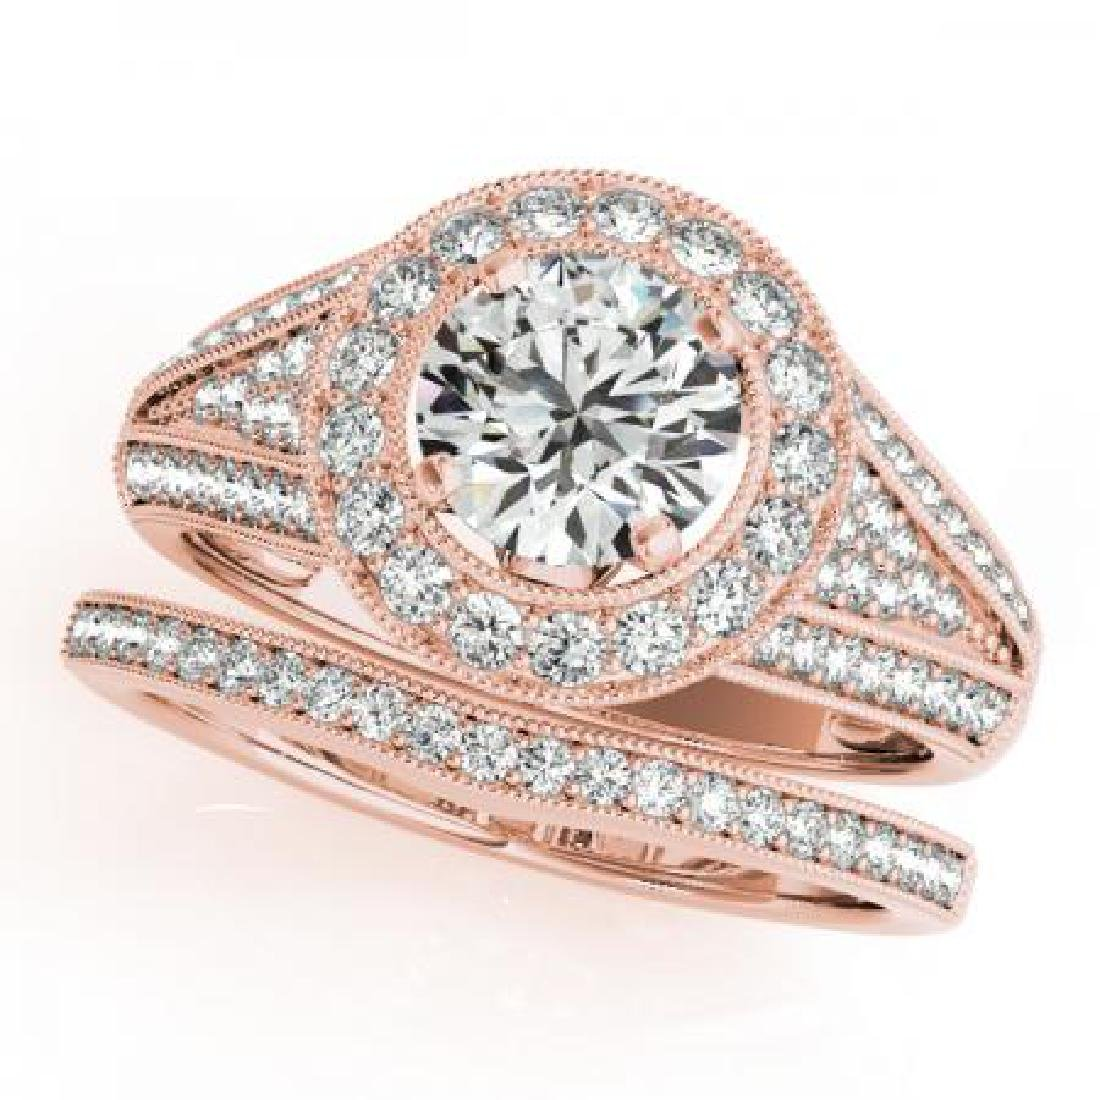 CERTIFIED 14KT ROSE GOLD 0.95 CT G-H/VS-SI1 DIAMOND HAL